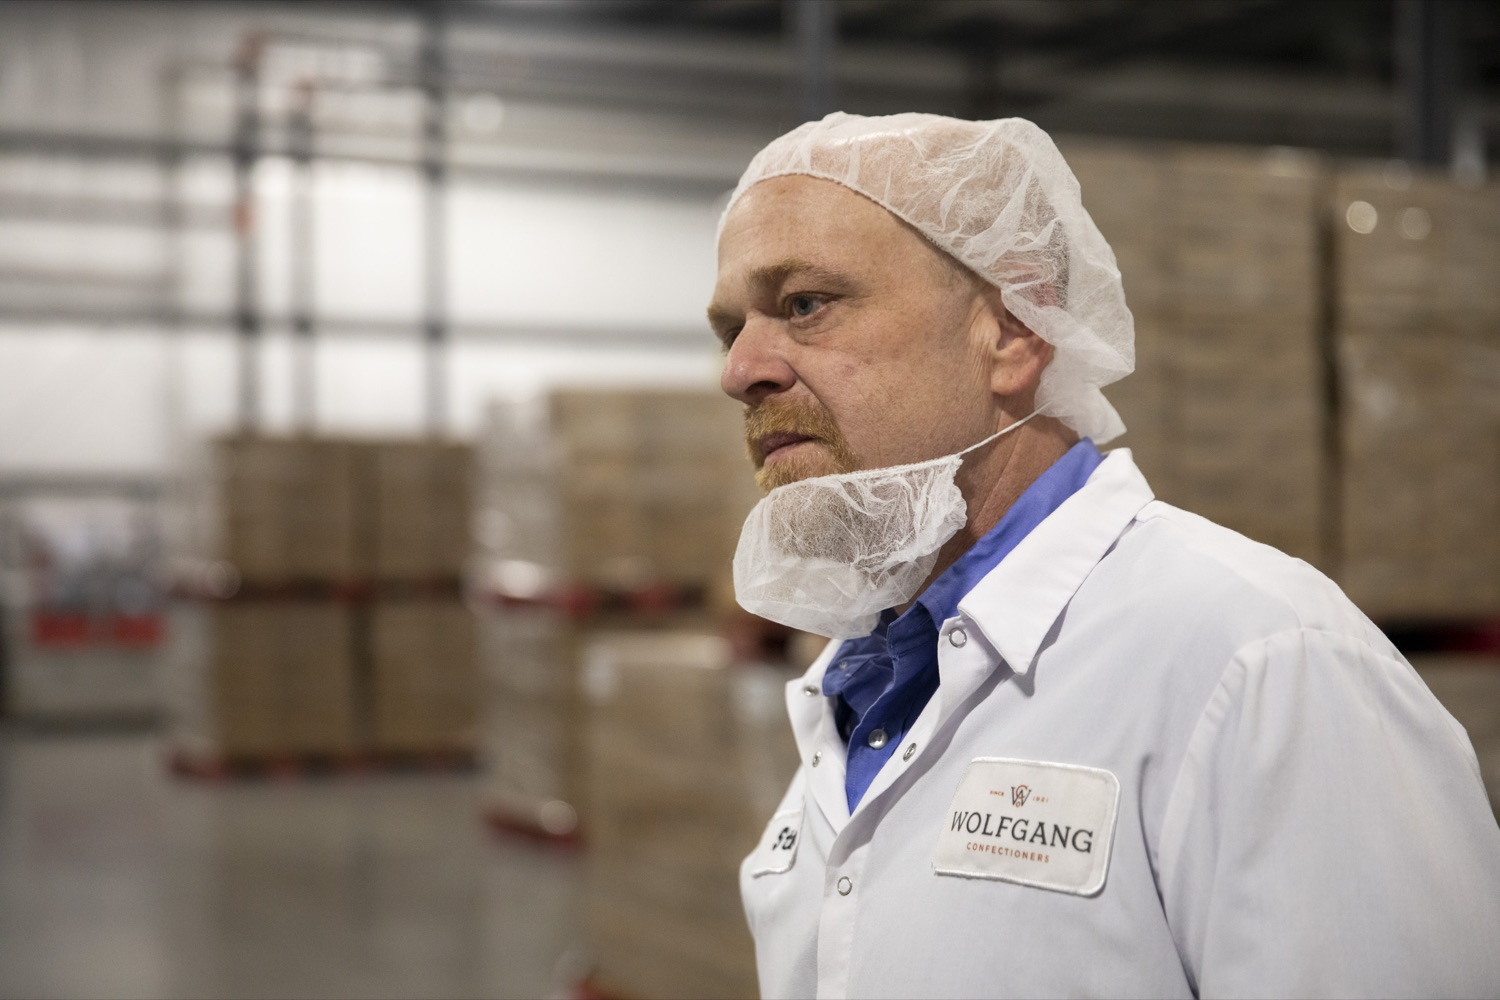 """<a href=""""https://filesource.wostreaming.net/commonwealthofpa/photo/17740_DCED_WOLFGANG_TOUR_CZ_02.JPG"""" target=""""_blank"""">⇣Download Photo<br></a>Steve Herbert, Plant Manager for Wolfgang Confectioners, gives a tour of the facility, which manufactures assorted chocolates and confections, in York County on February 13, 2020."""